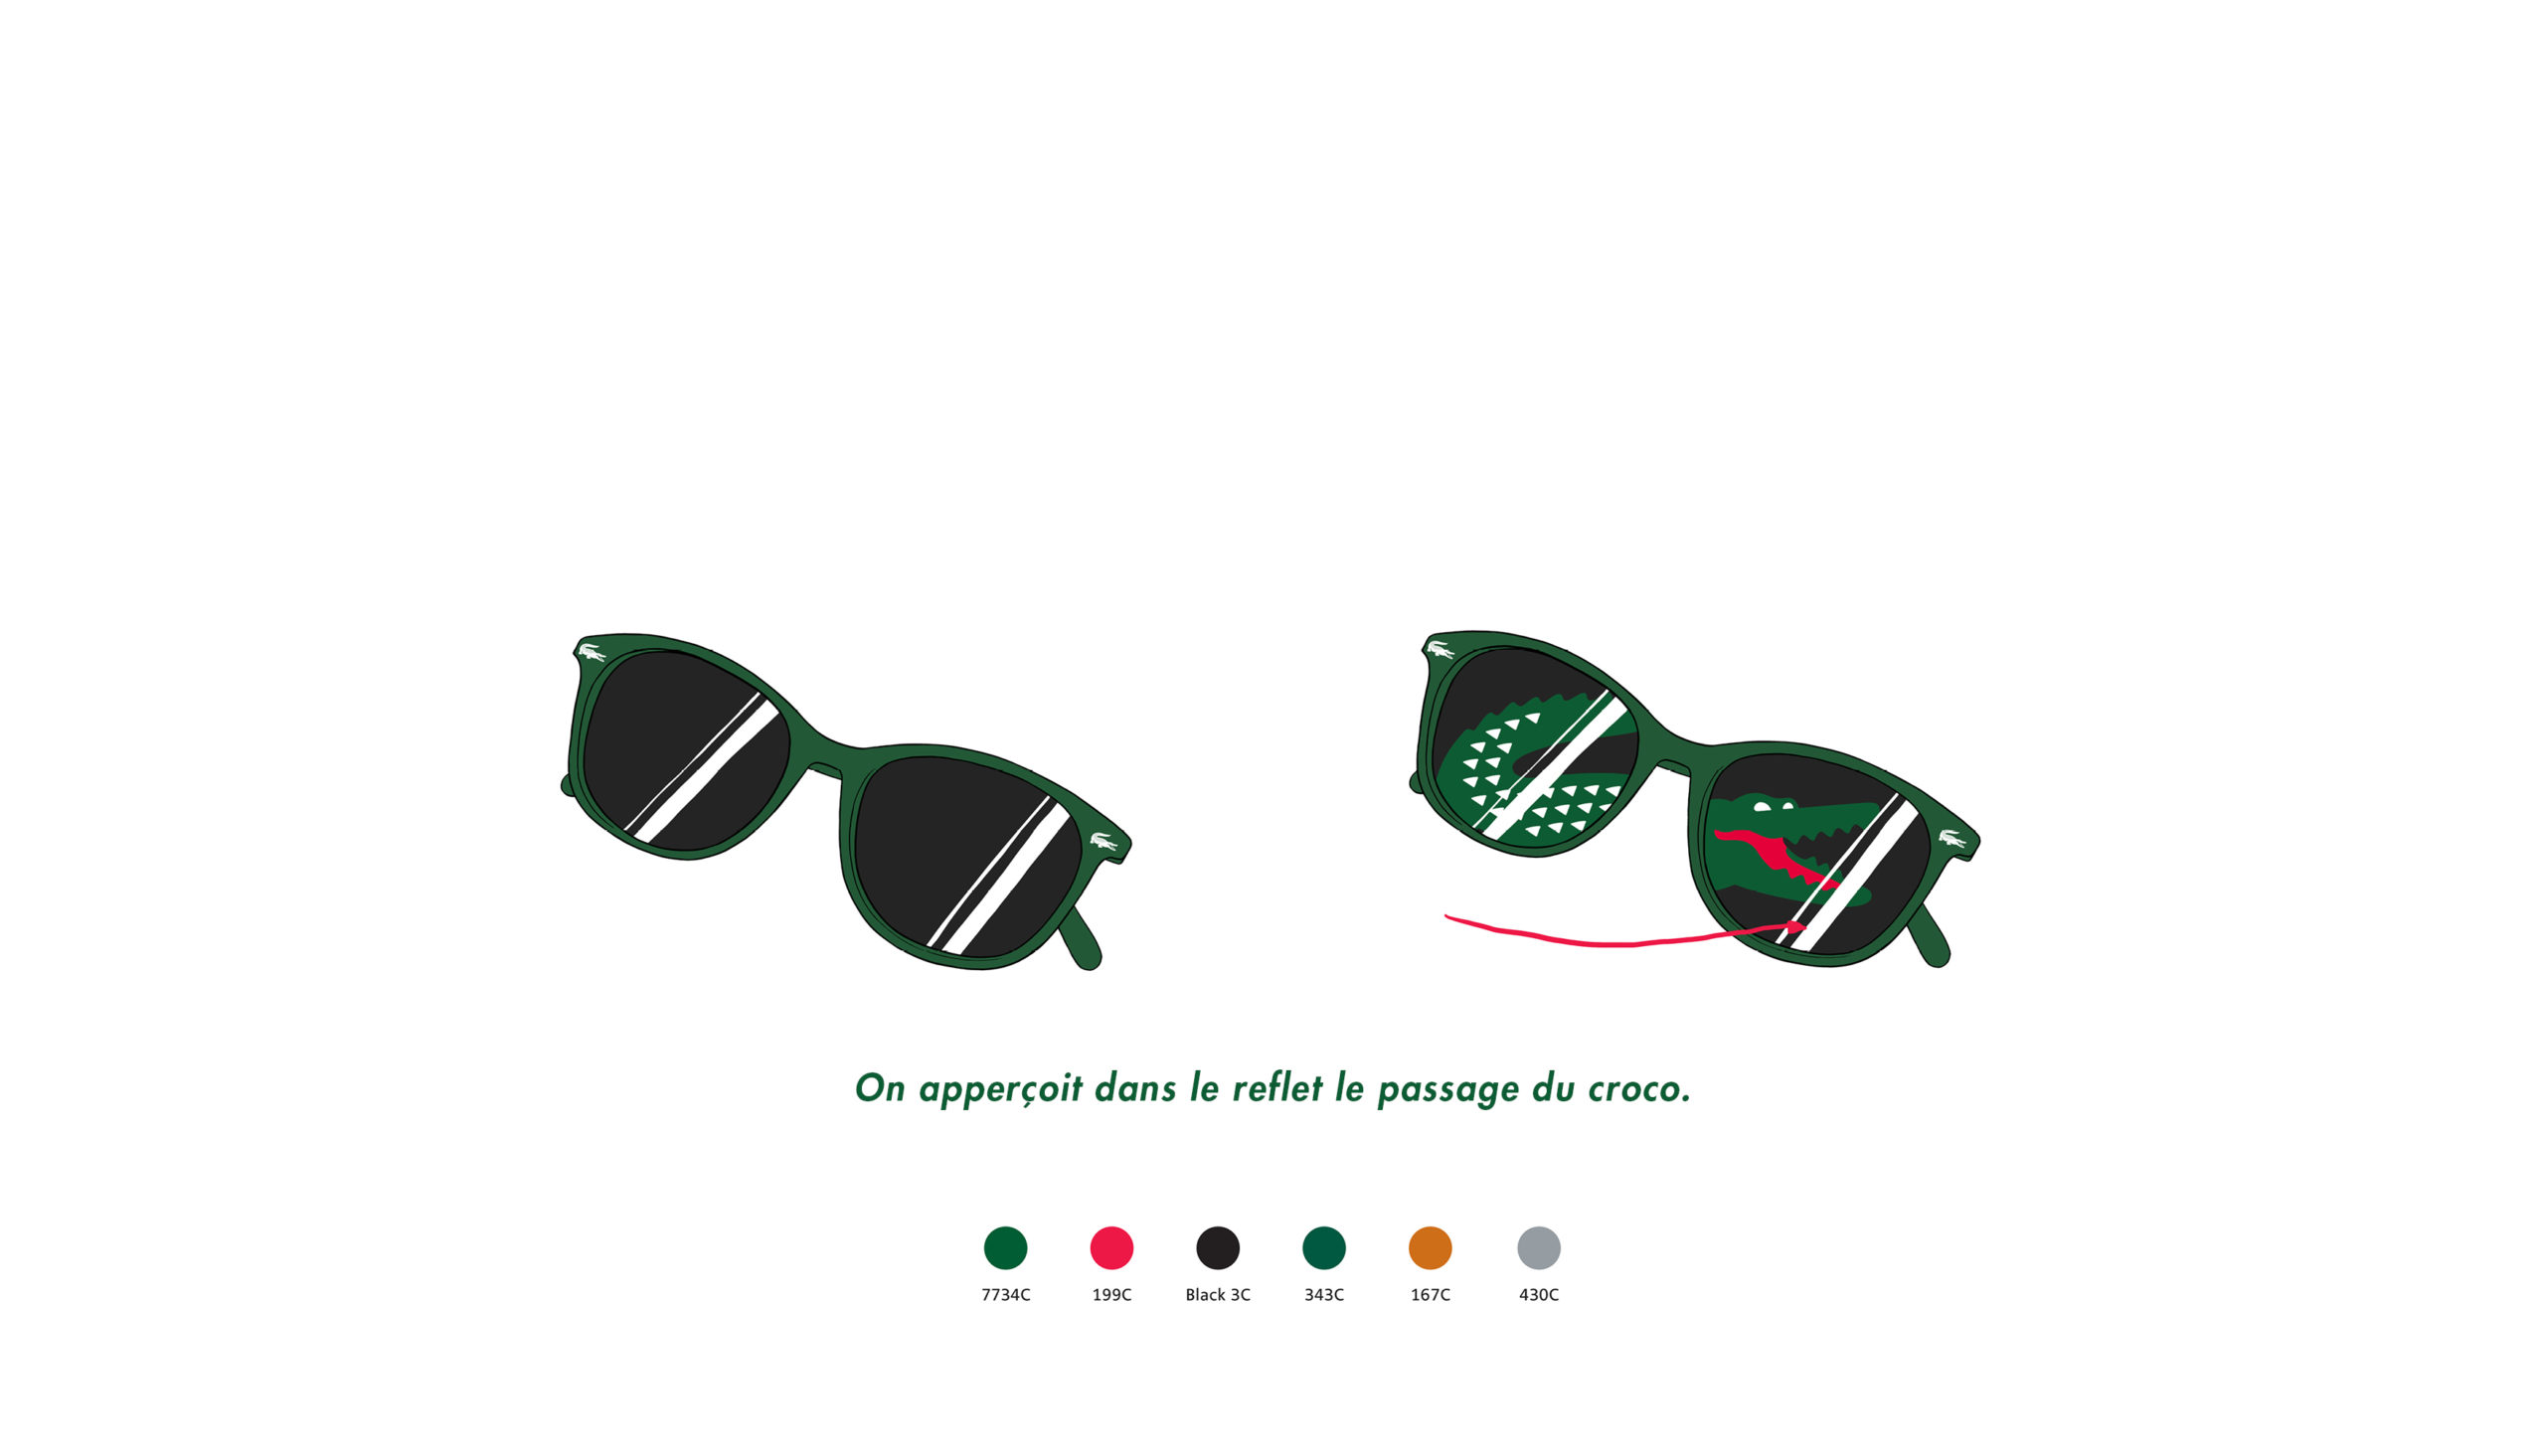 LACOSTE_STICKERS_HOBBYNOTE_R_0832